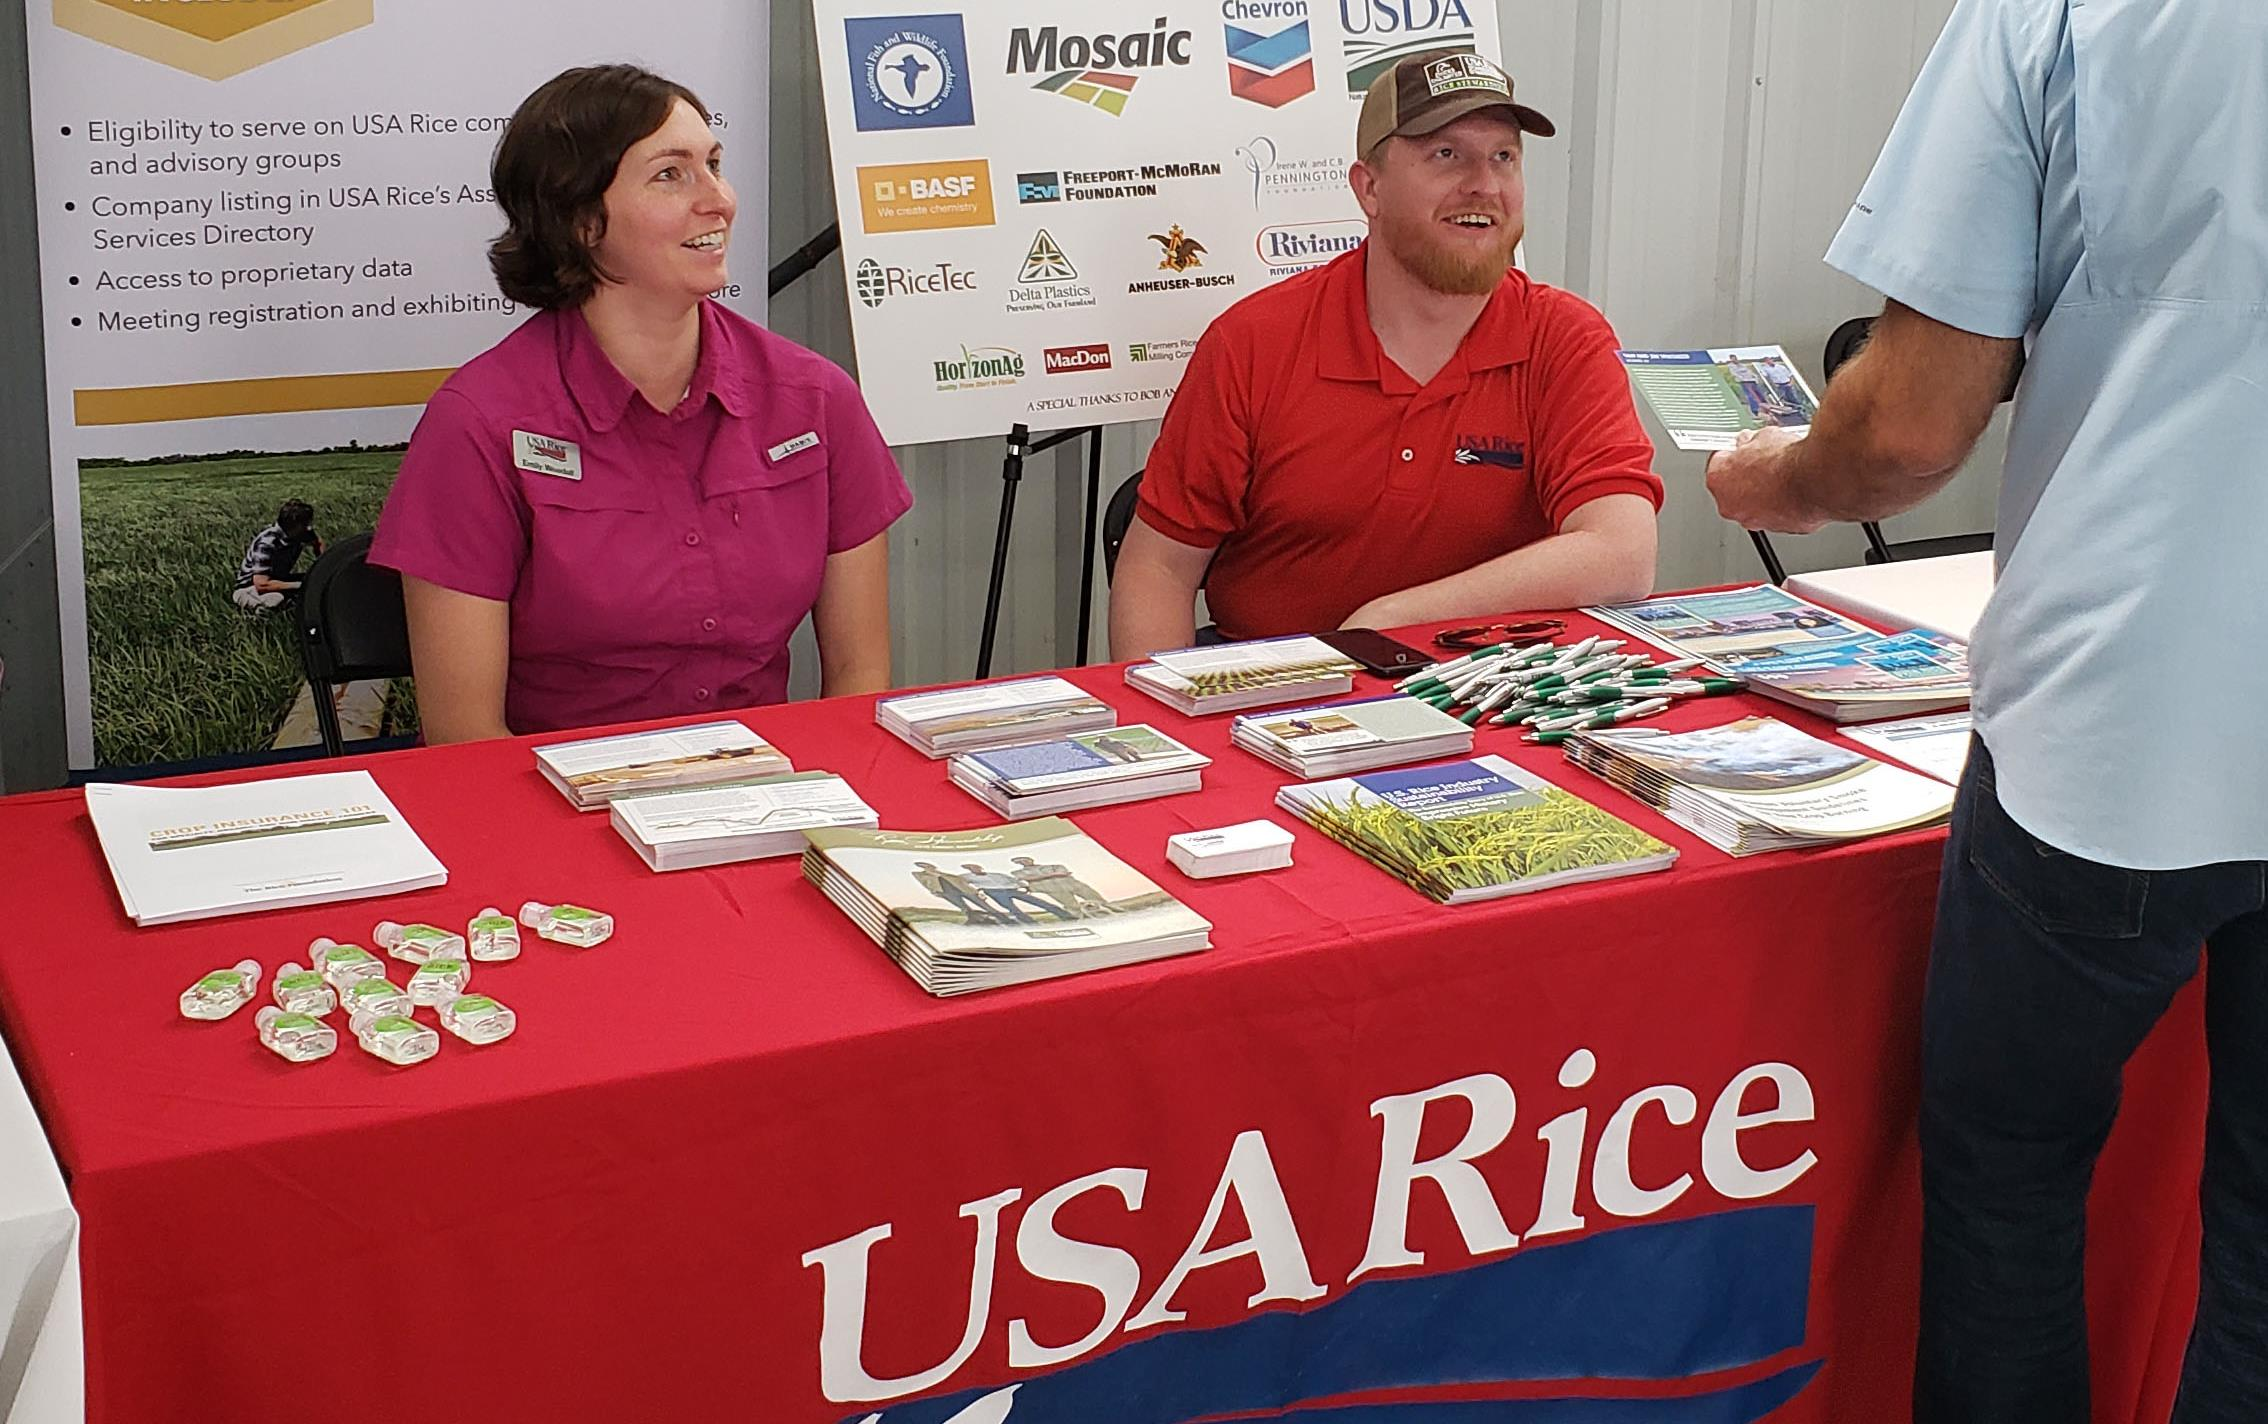 A woman and a man sit behind a table draped with USA Rice tablecloth and covered with literature, man stands in front holding postcard, posters in background